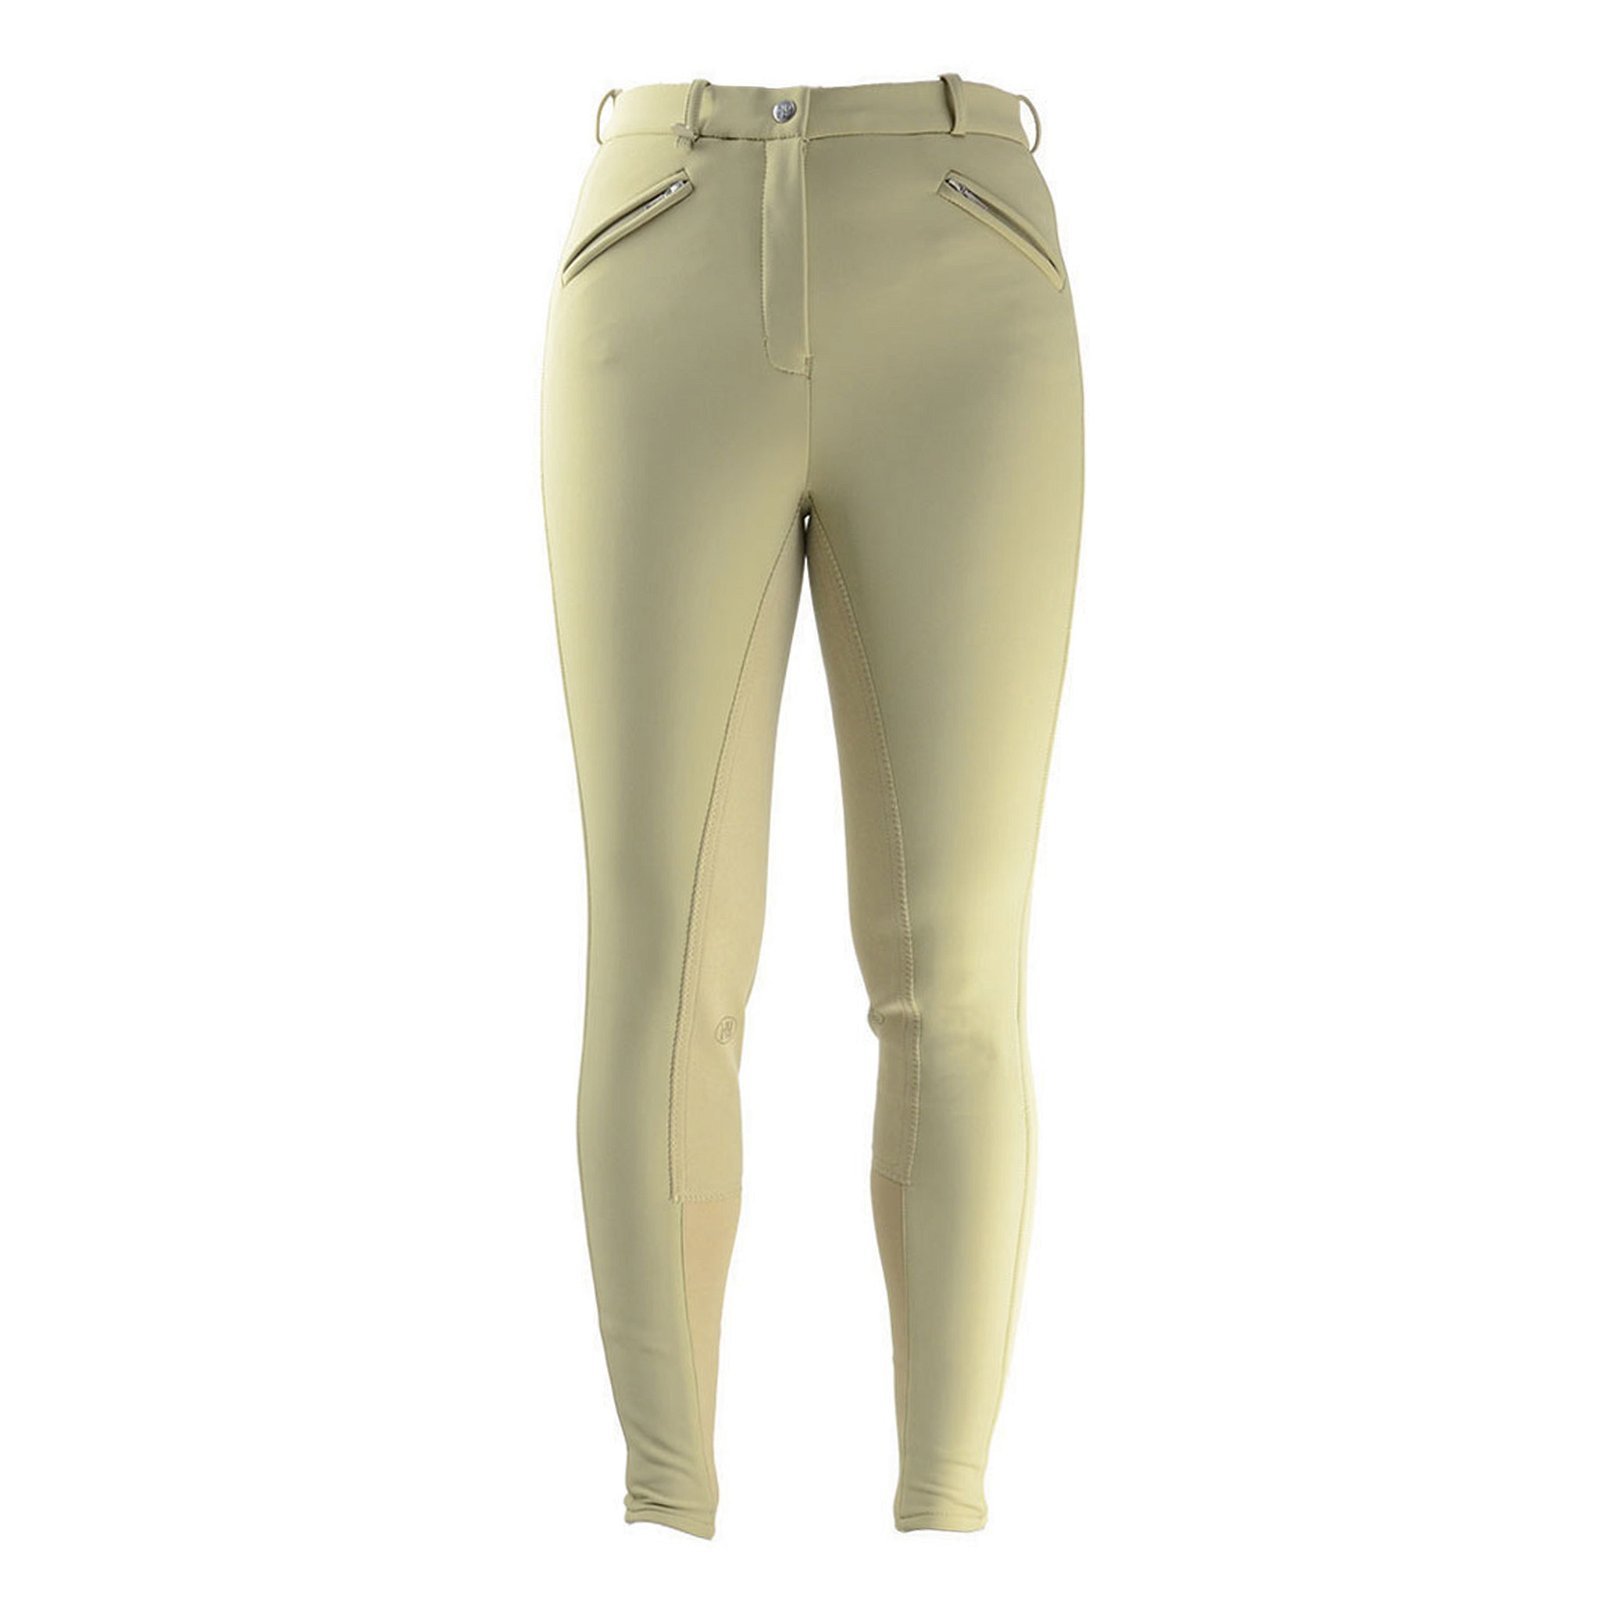 winter weather HyPERFORMANCE Thermal Softshell Breeches water repellent